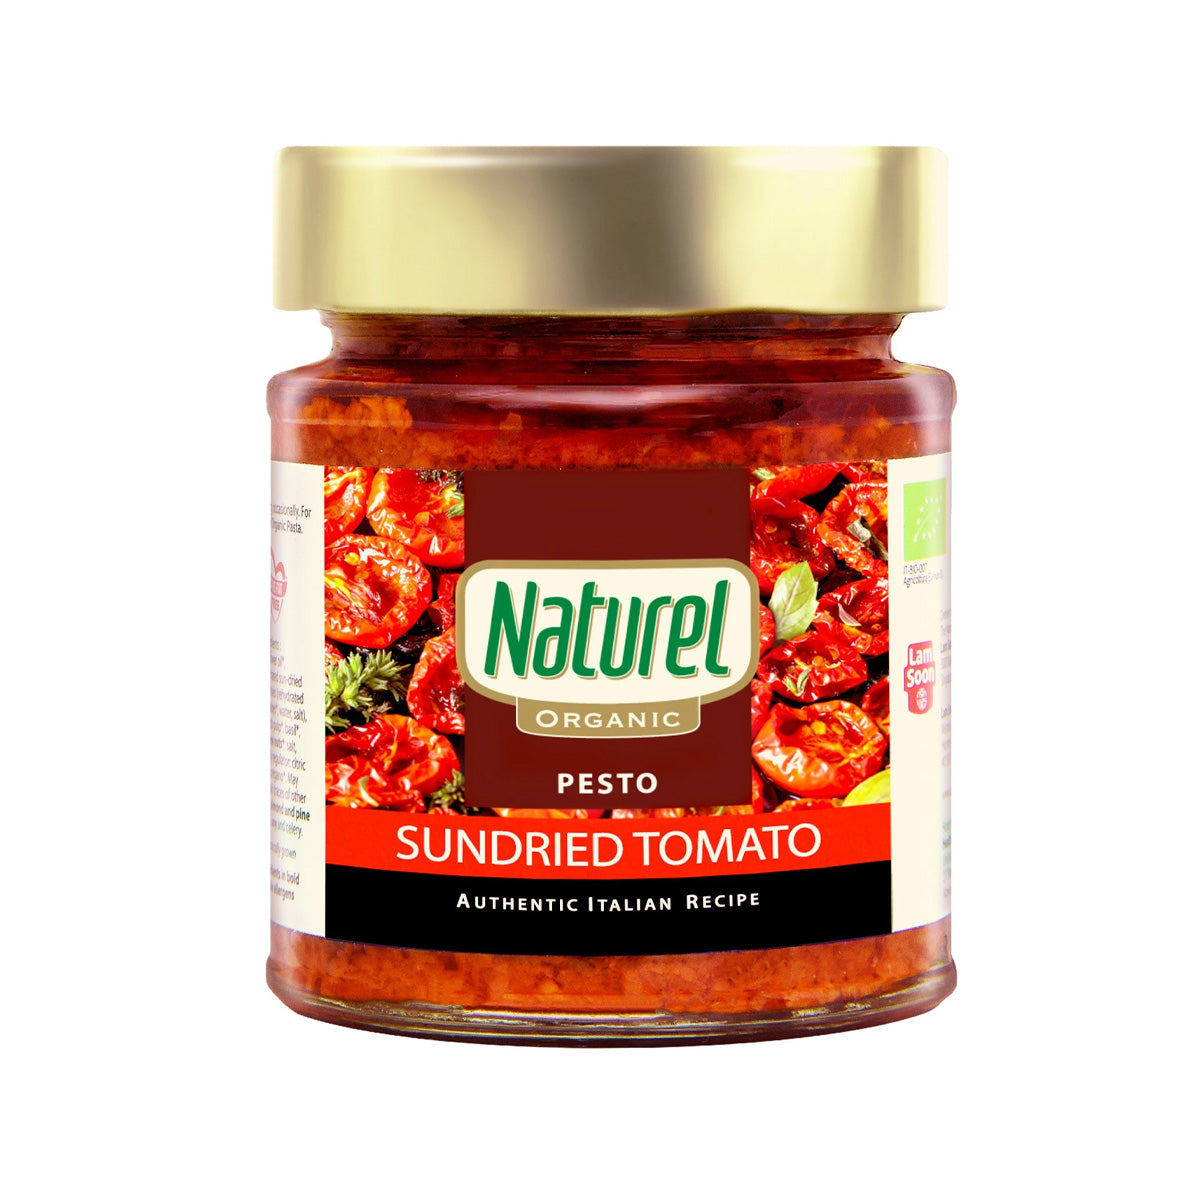 Naturel Organic Sundried Tomato (140g)